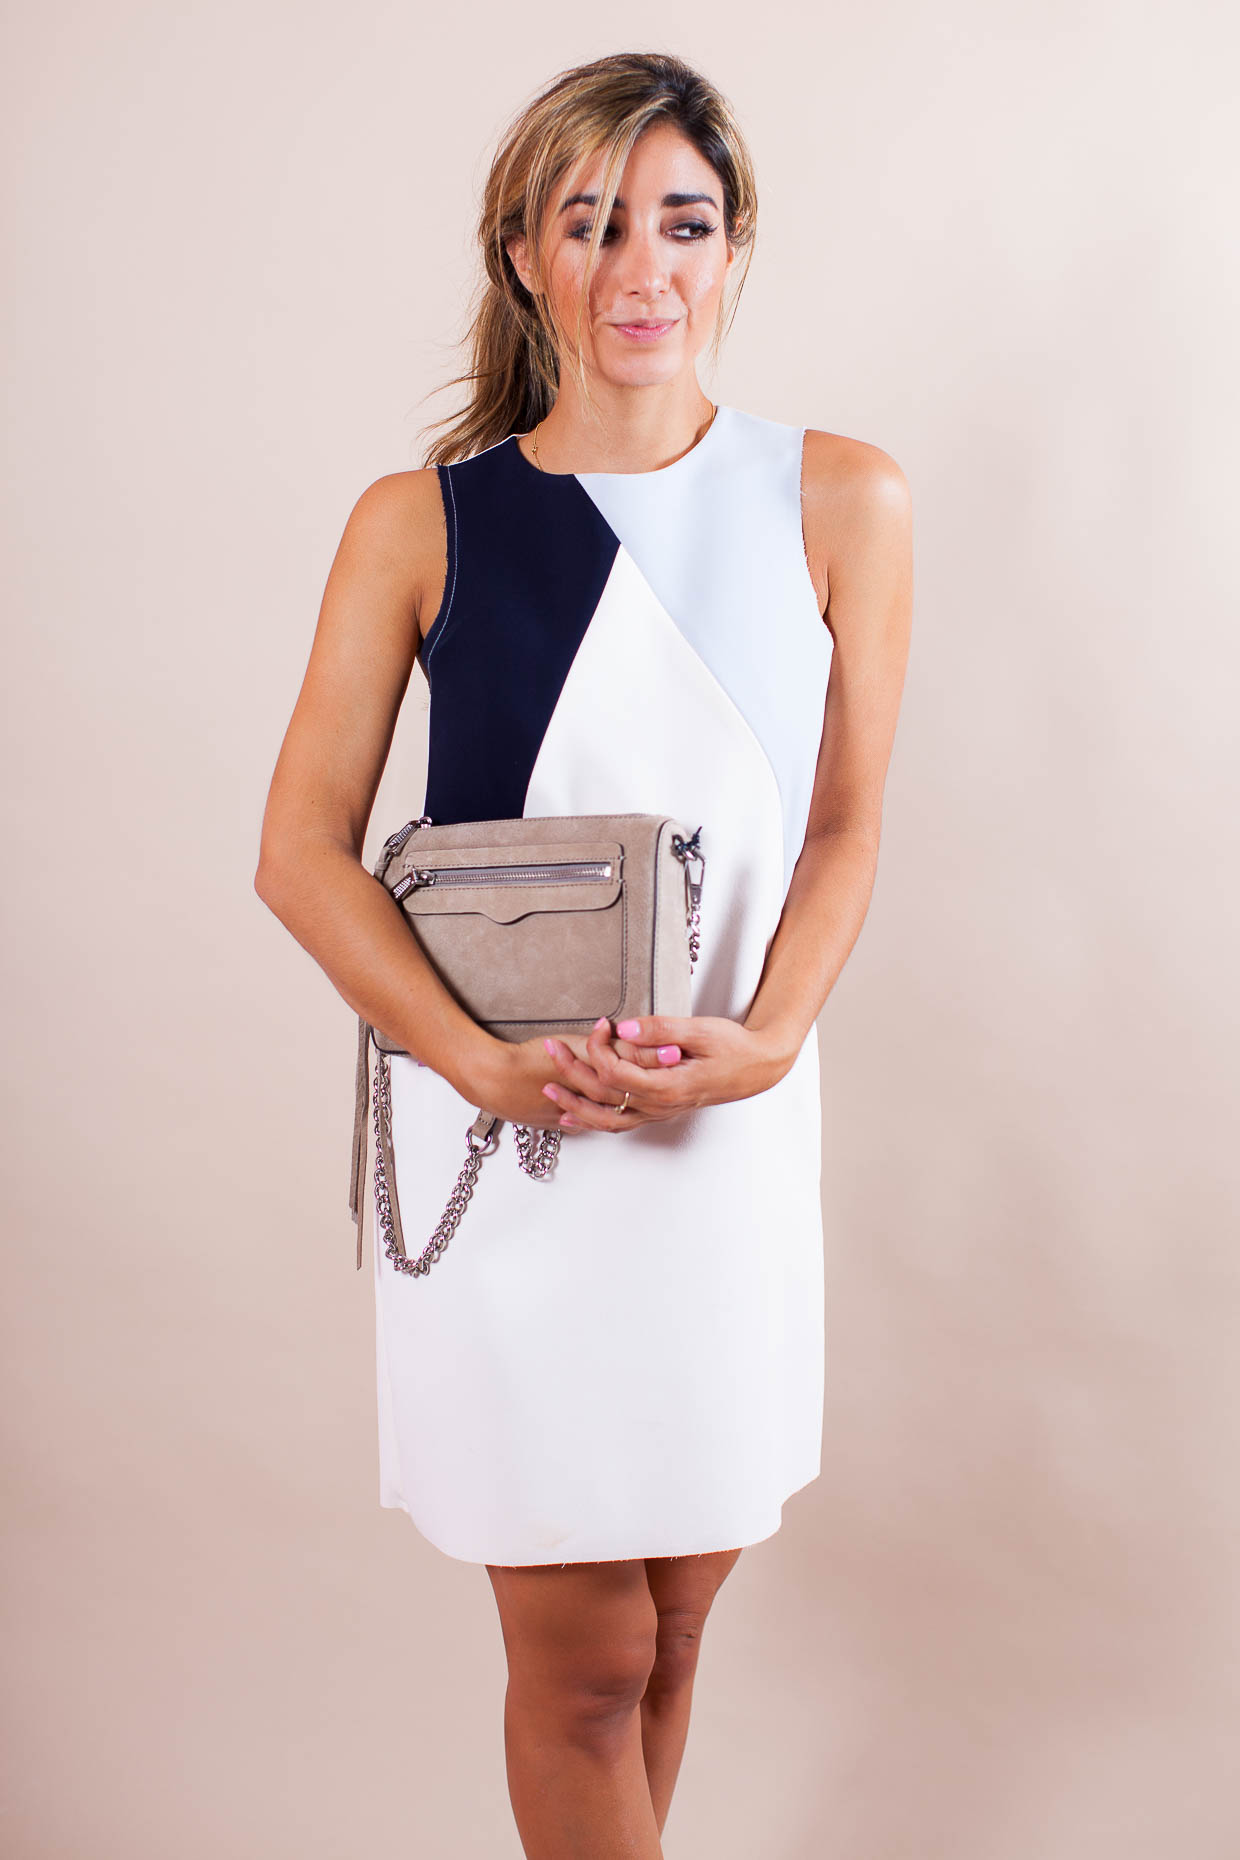 The Darling Detail is wearing a Topshop Colorblock Shift Dress, Michael Kors 'Marina' Slingback Platform Sandals, and is carrying the Rebecca Minkoff 'Avery' Crossbody Bag.